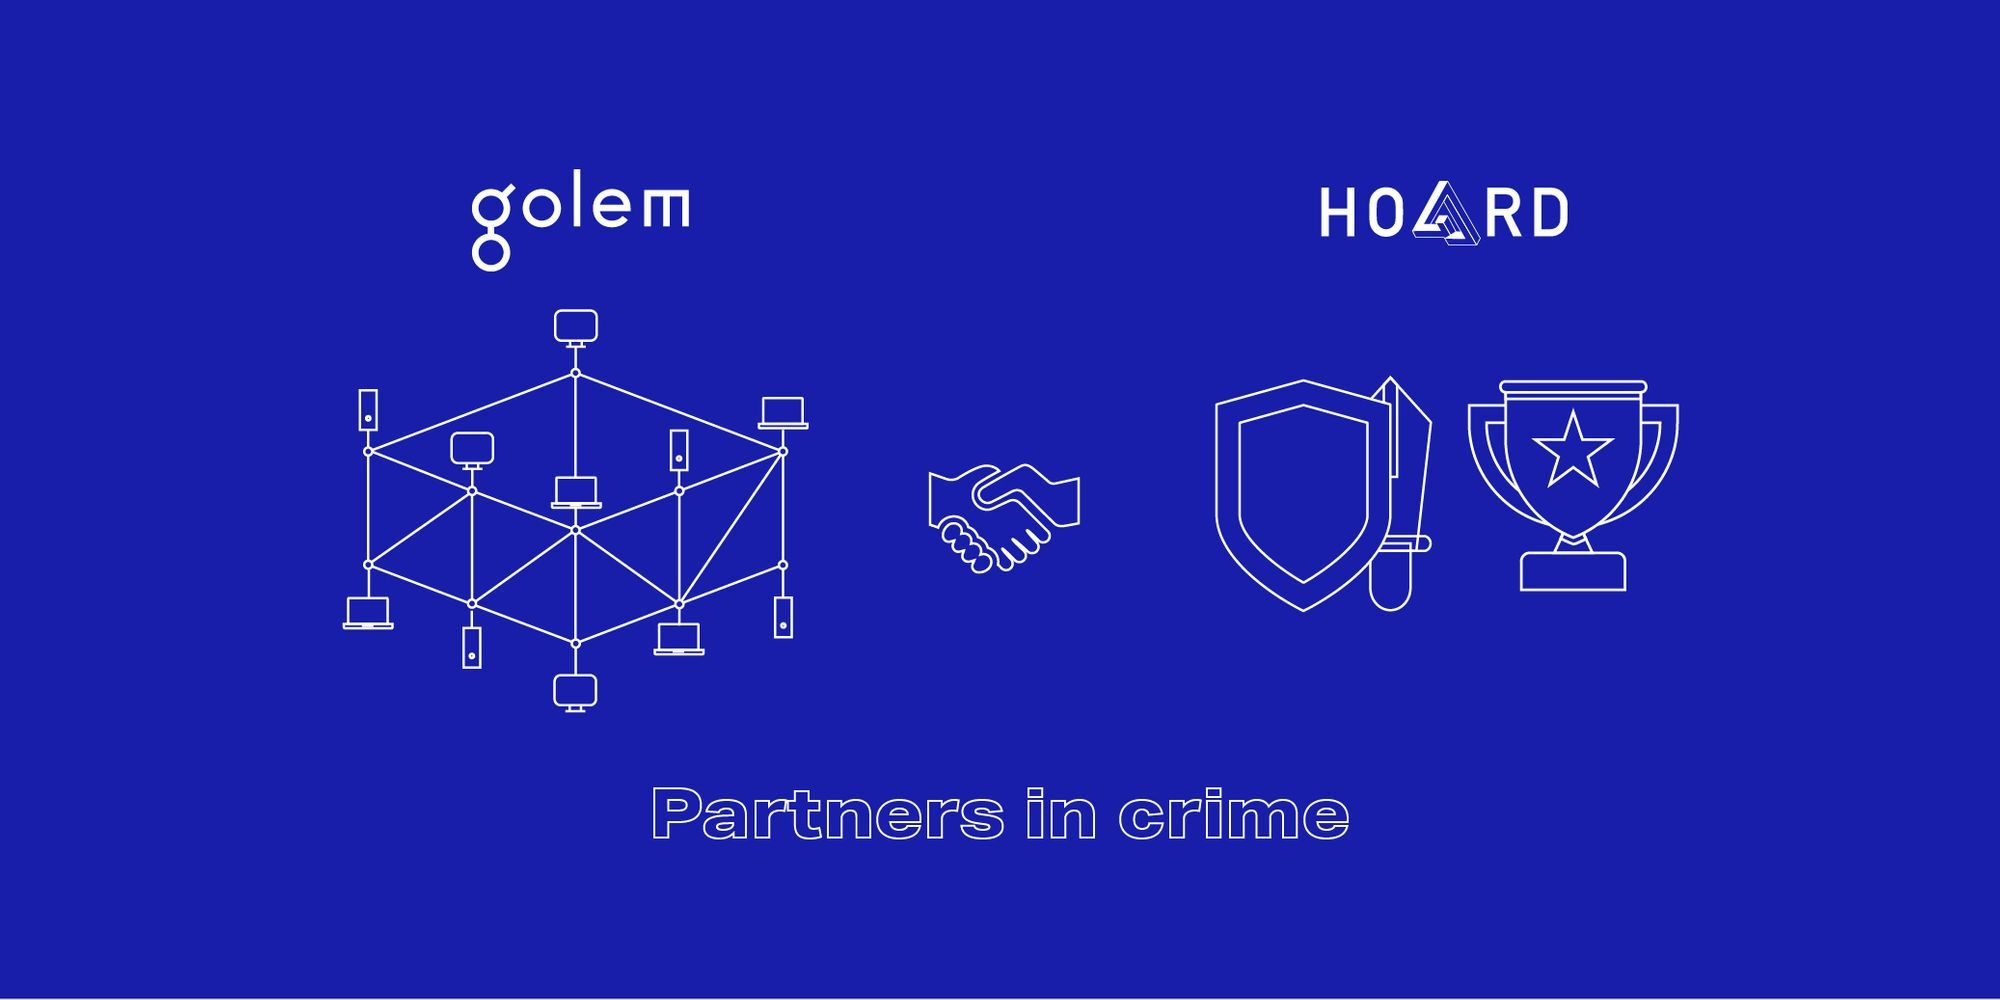 Web 3.0 solutions for game development: Golem and Hoard - partners in crime